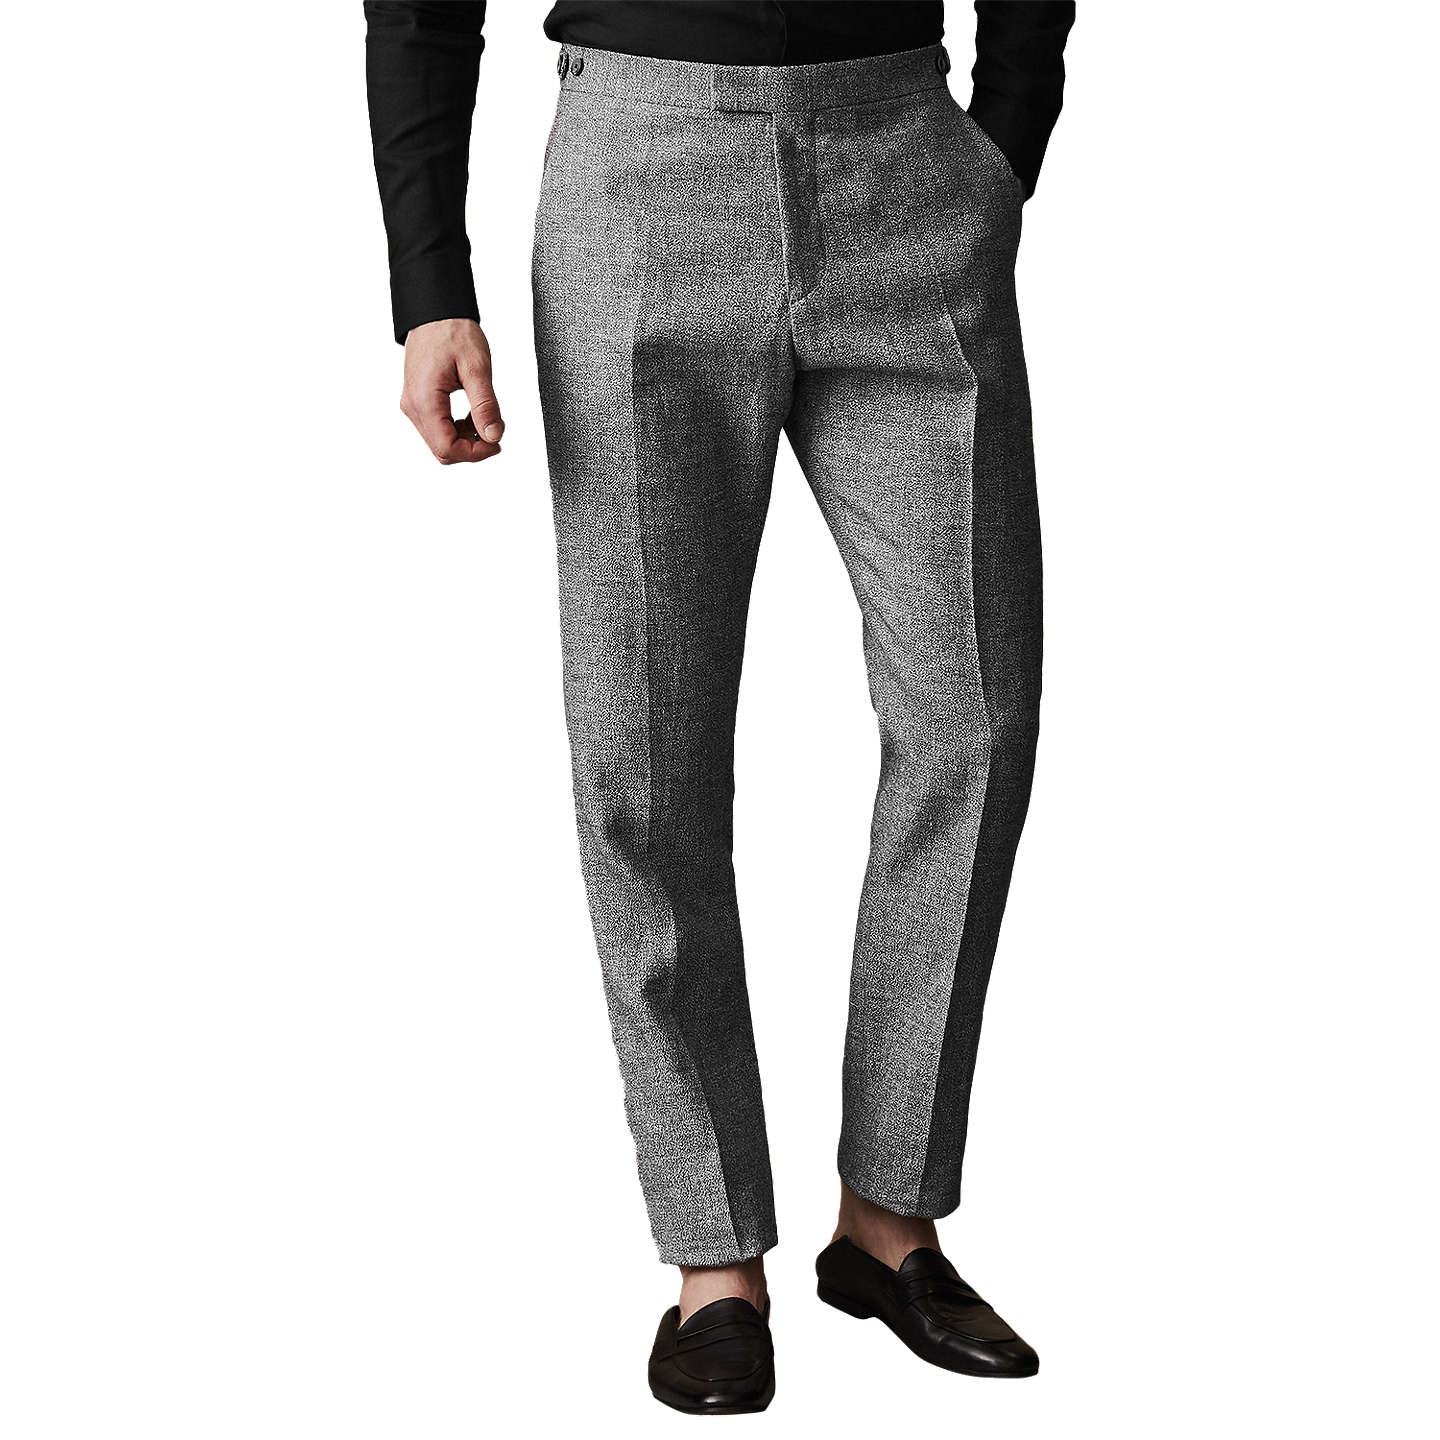 Tribe T - Slim Fit Linen Trousers in Grey, Mens, Size 28 Reiss